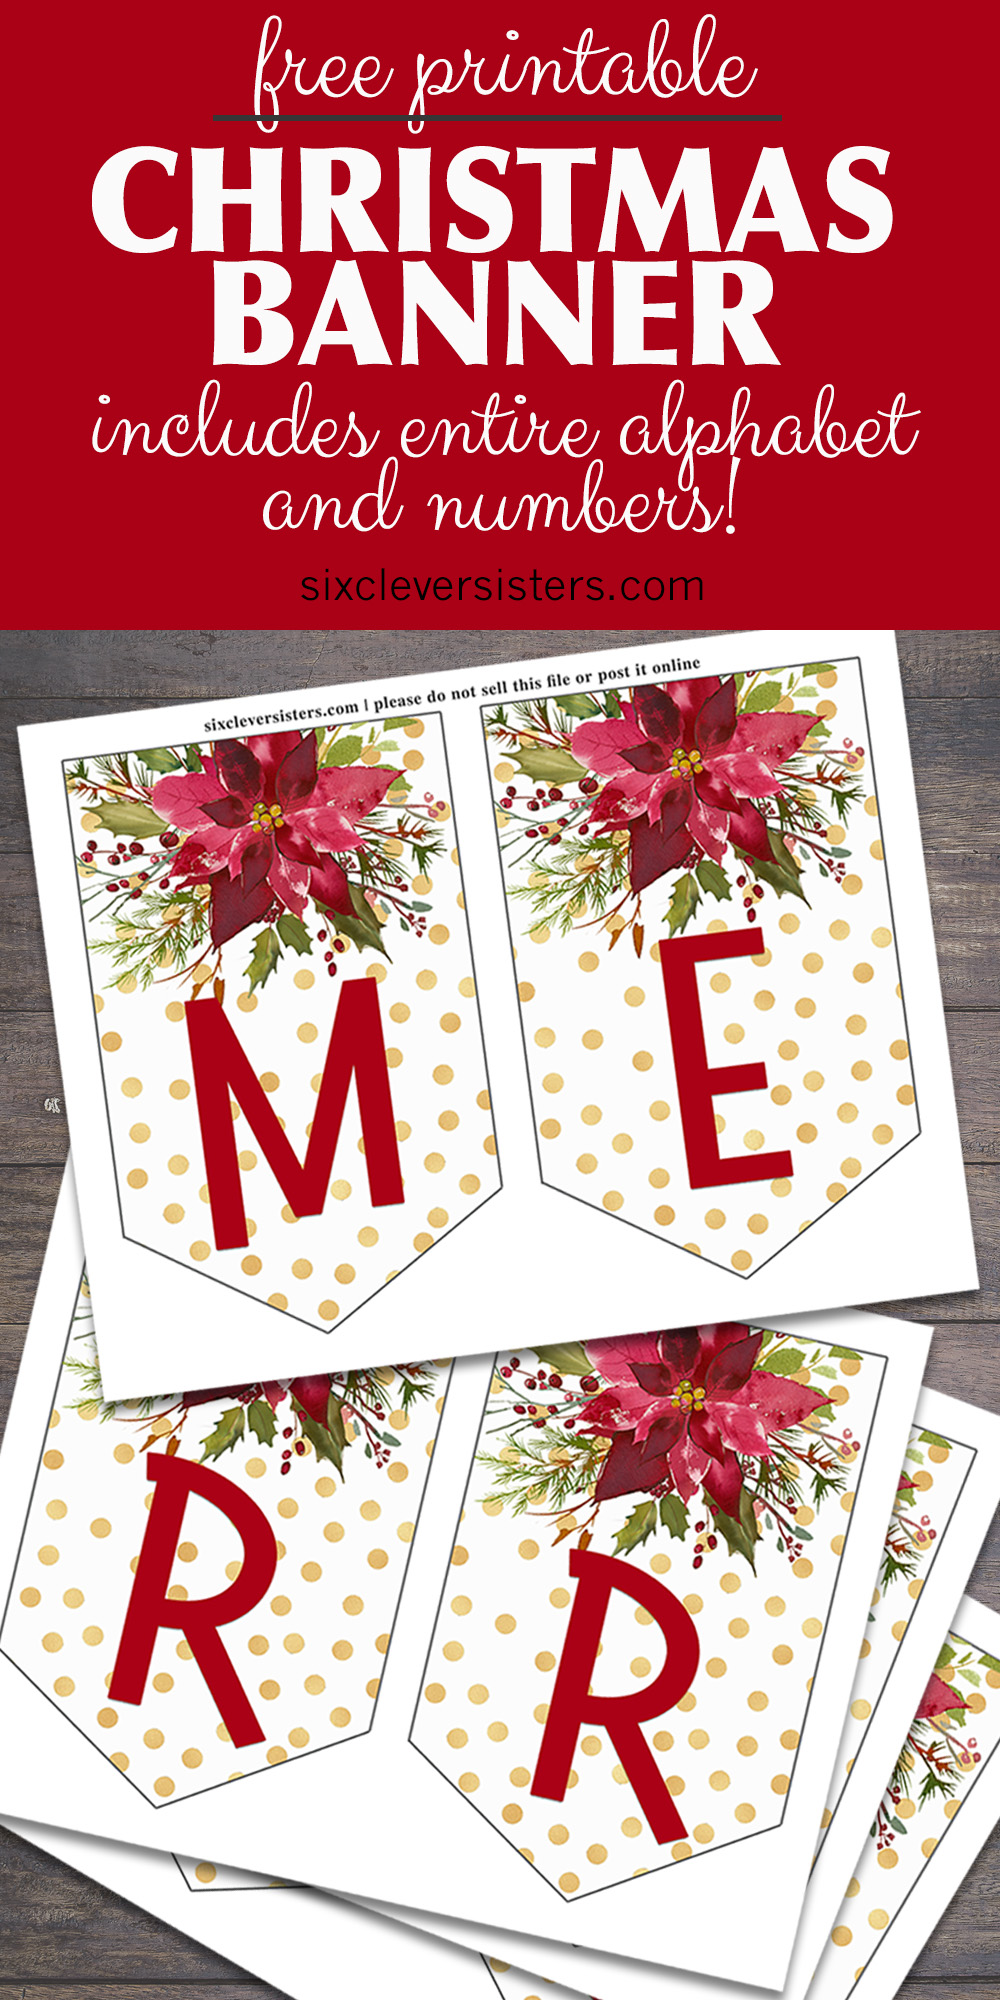 This is a photo of Merry Christmas Letters Printable in background